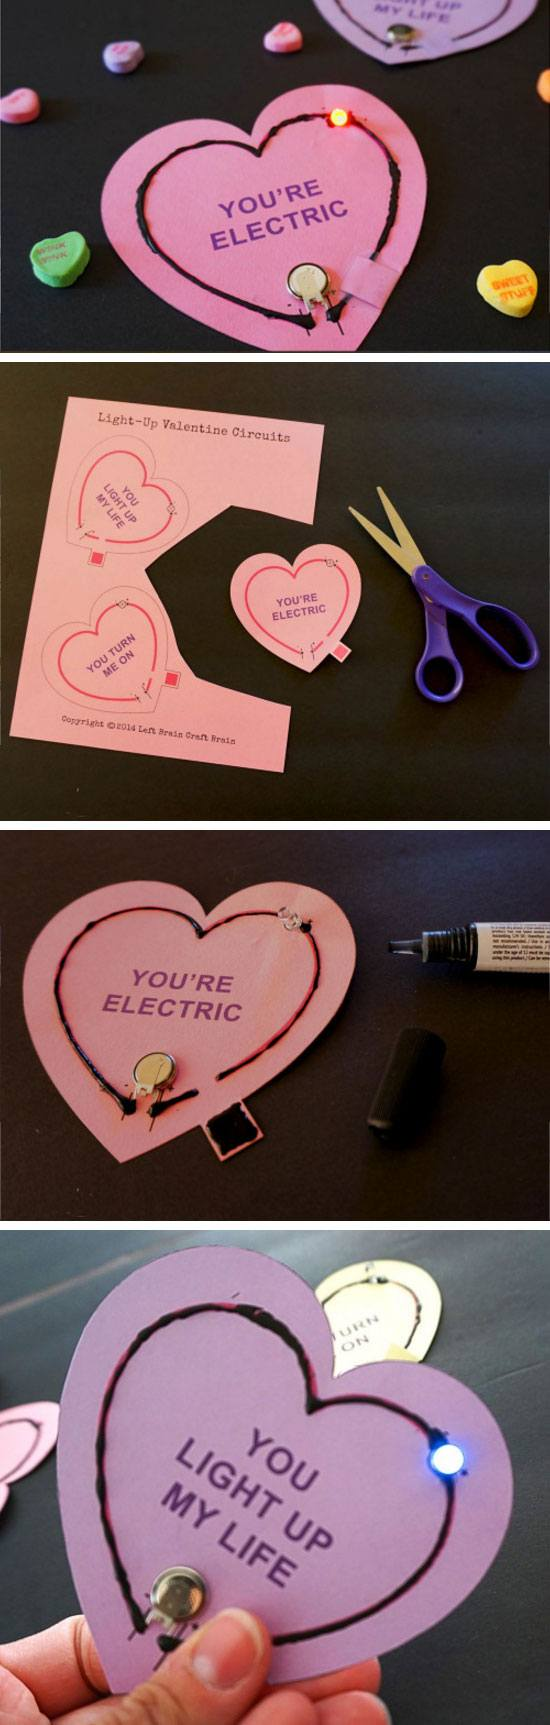 Light Circuit Valentines Cards.